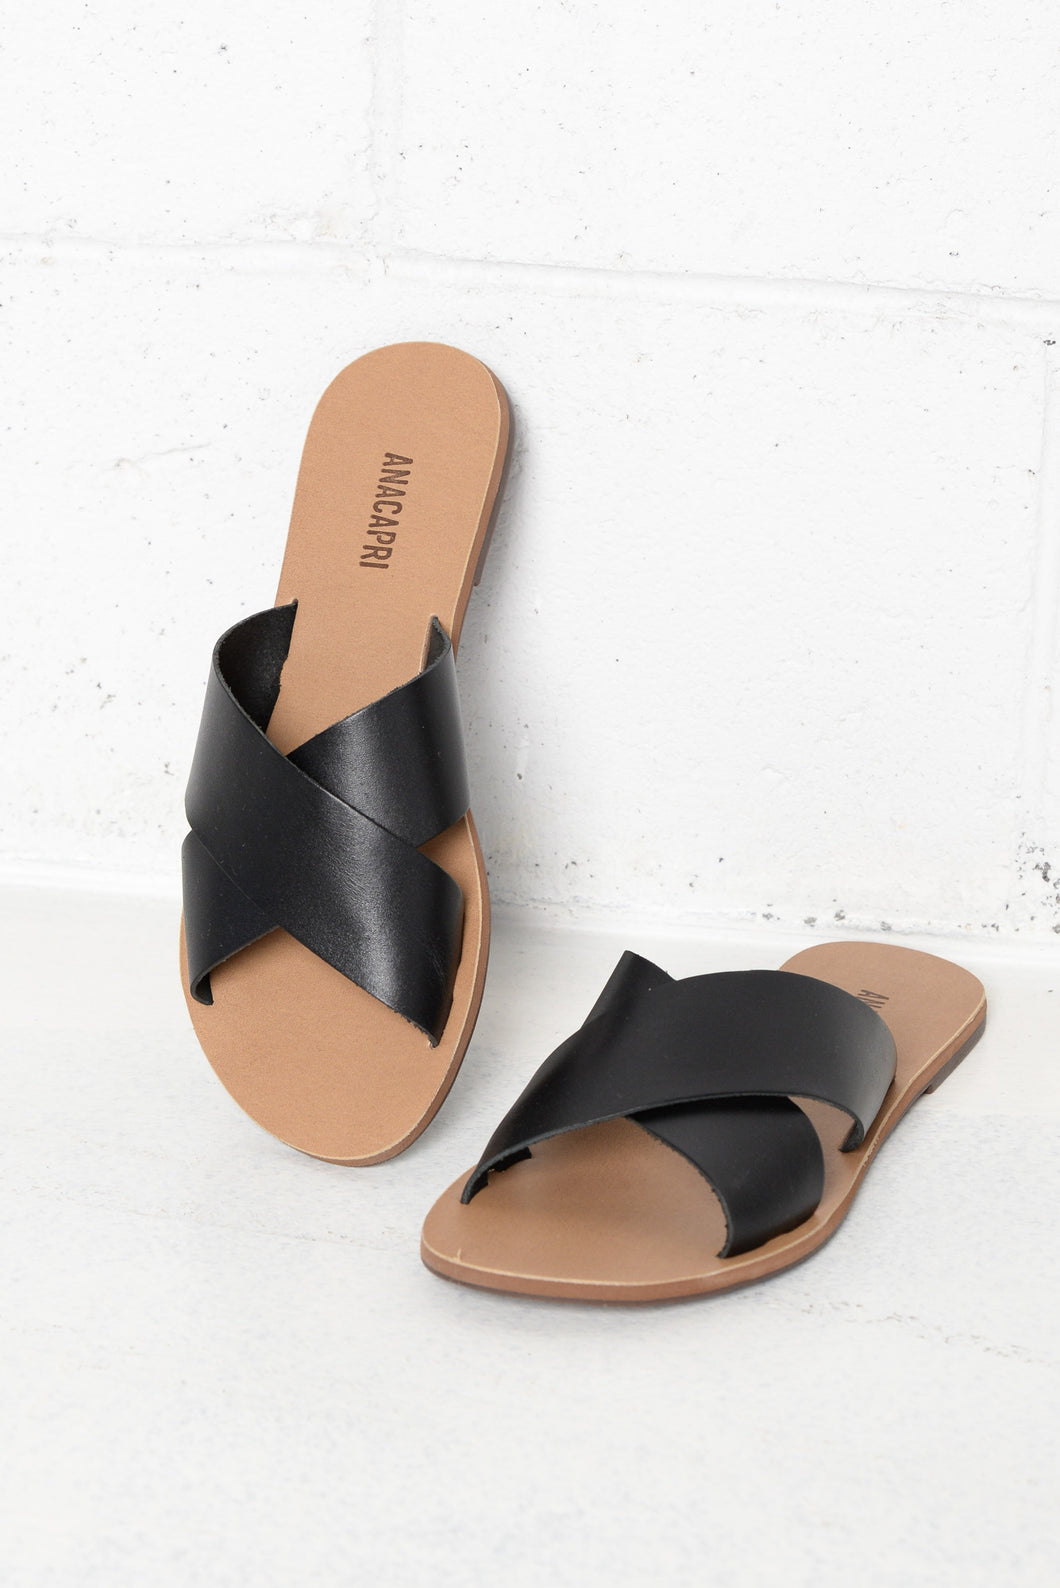 Violette Black Leather Cross Over Slide